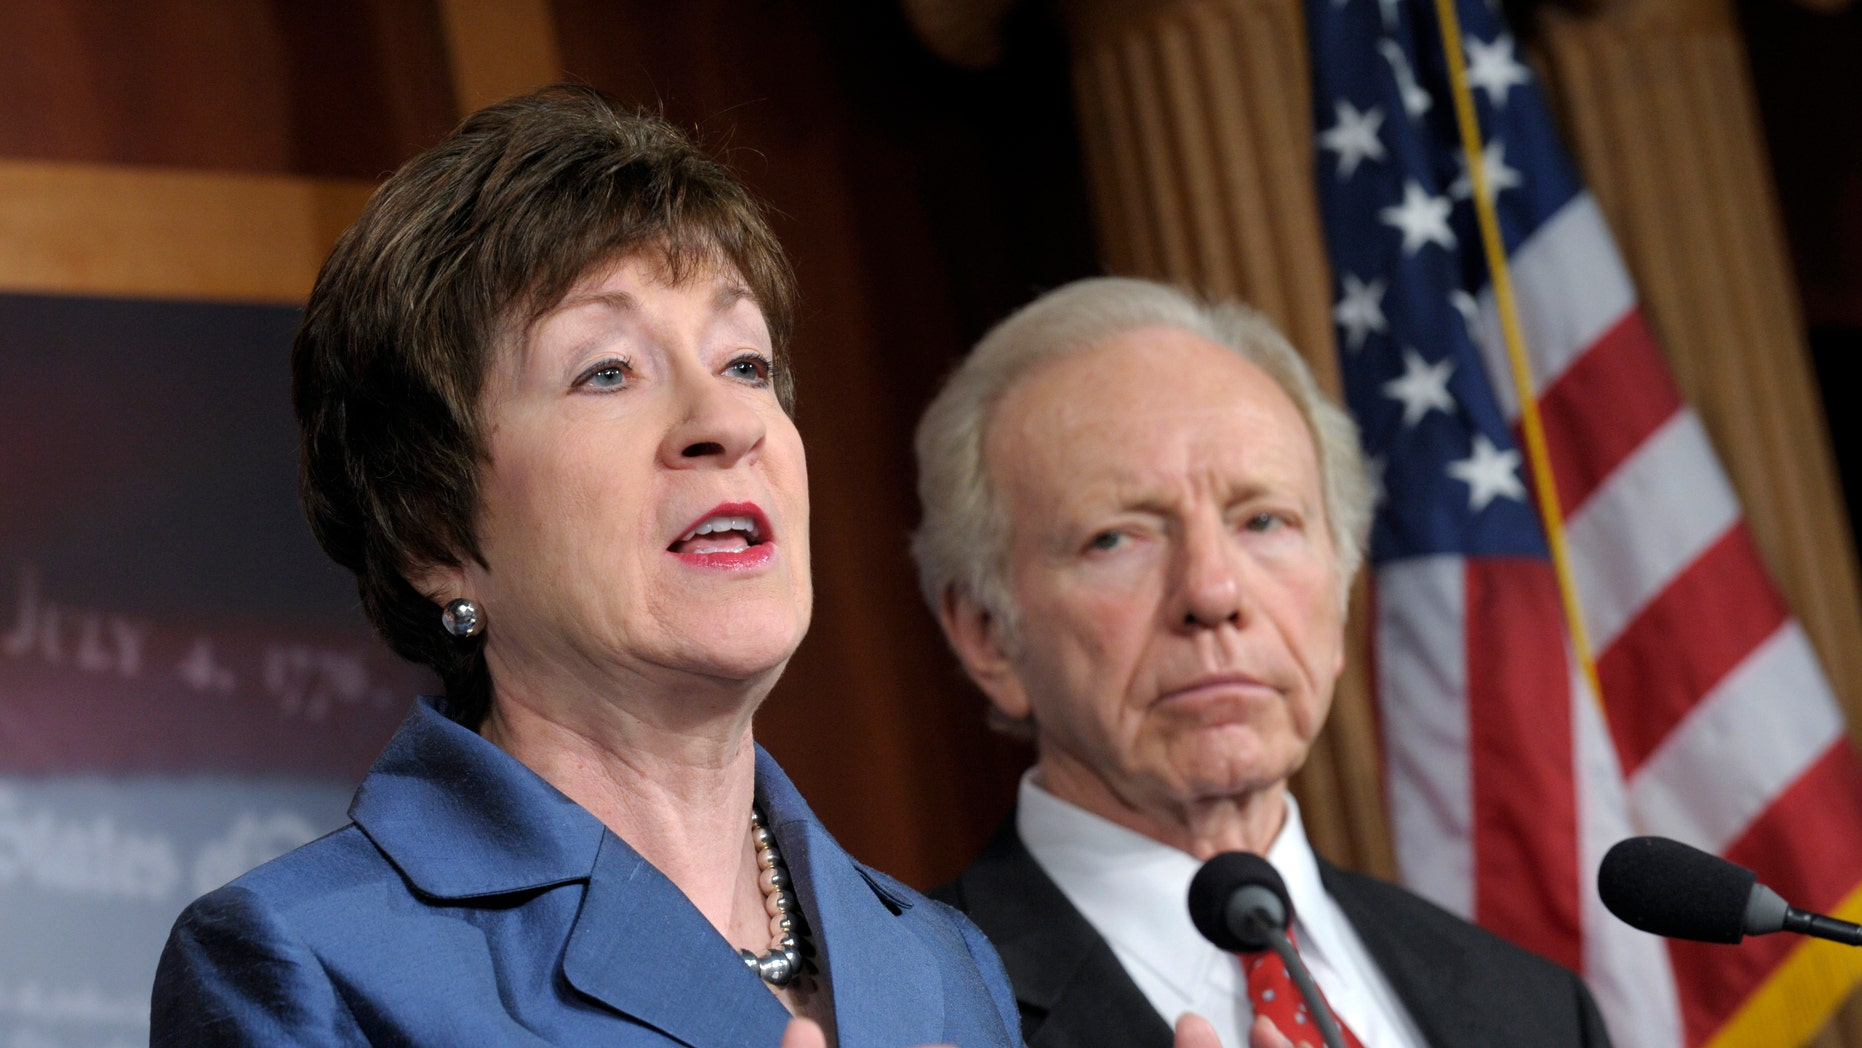 Senate Homeland Security Committee Chairman Sen. Joseph Lieberman, I-Conn. listens at right, as the committee's ranking Republican, Sen. Susan Collins, R-Maine speaks during a news conference on Capitol Hill in Washington, Monday, Dec. 31, 2012, to discuss the committee's report on the security deficiencies at the temporary U.S. Mission in Benghazi, Libya. (AP Photo/Susan Walsh)